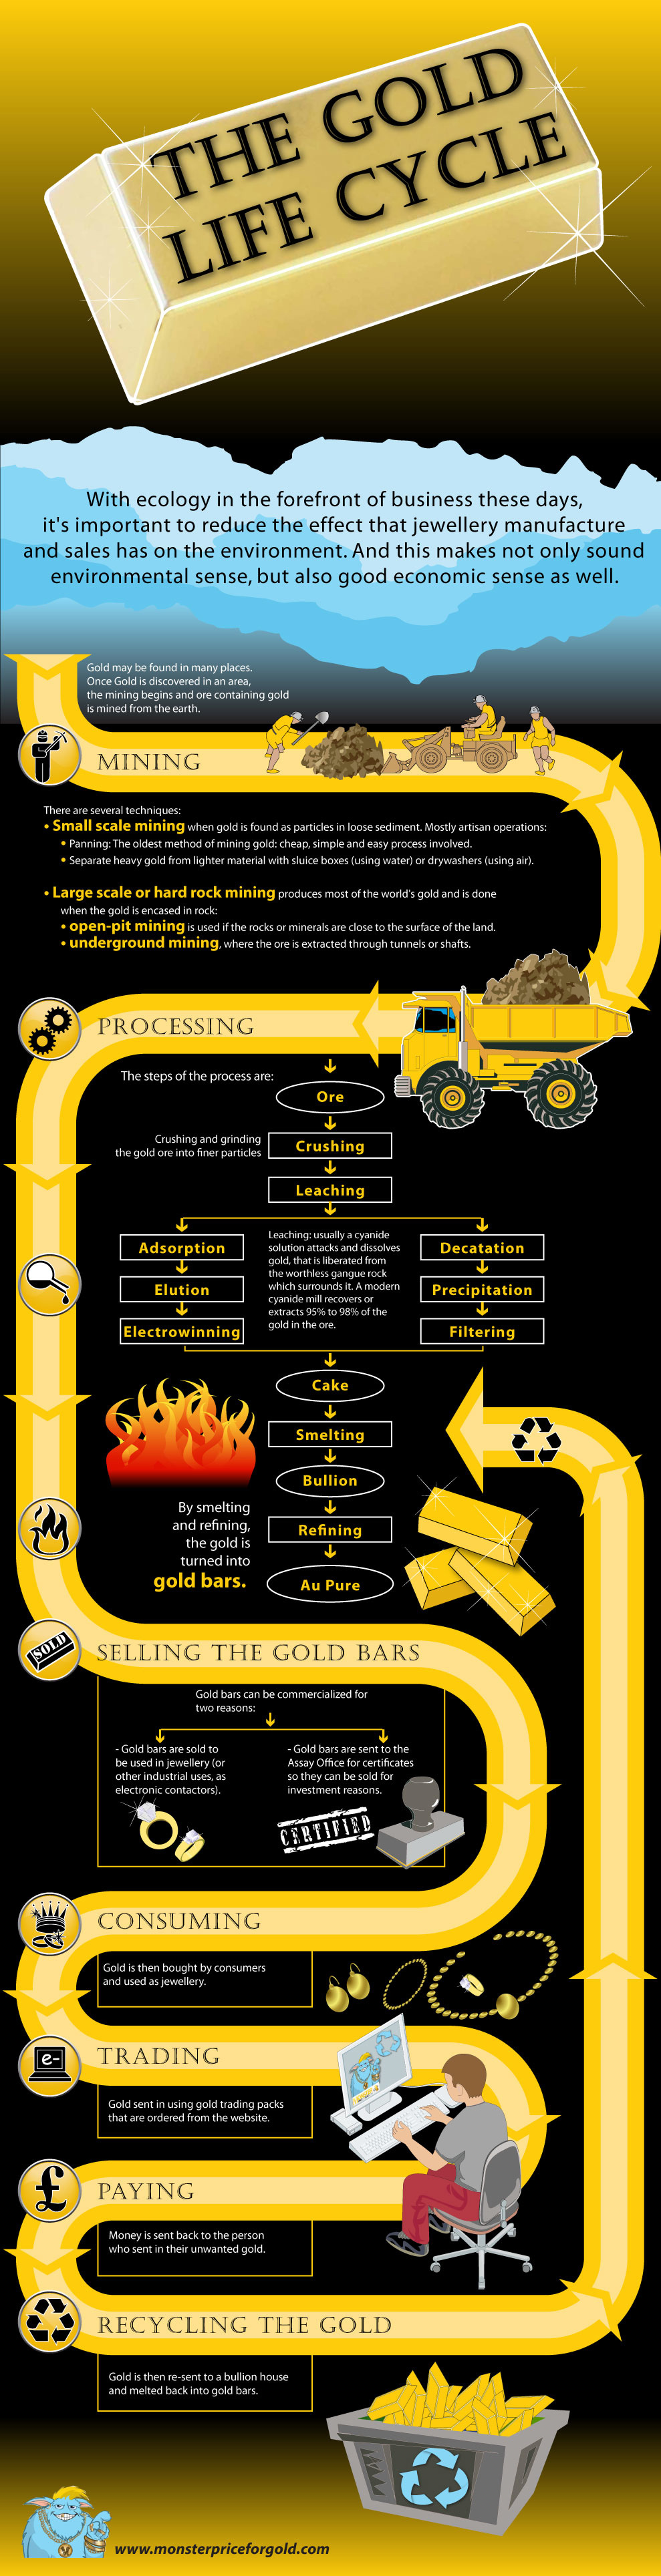 Life Cycle of Gold